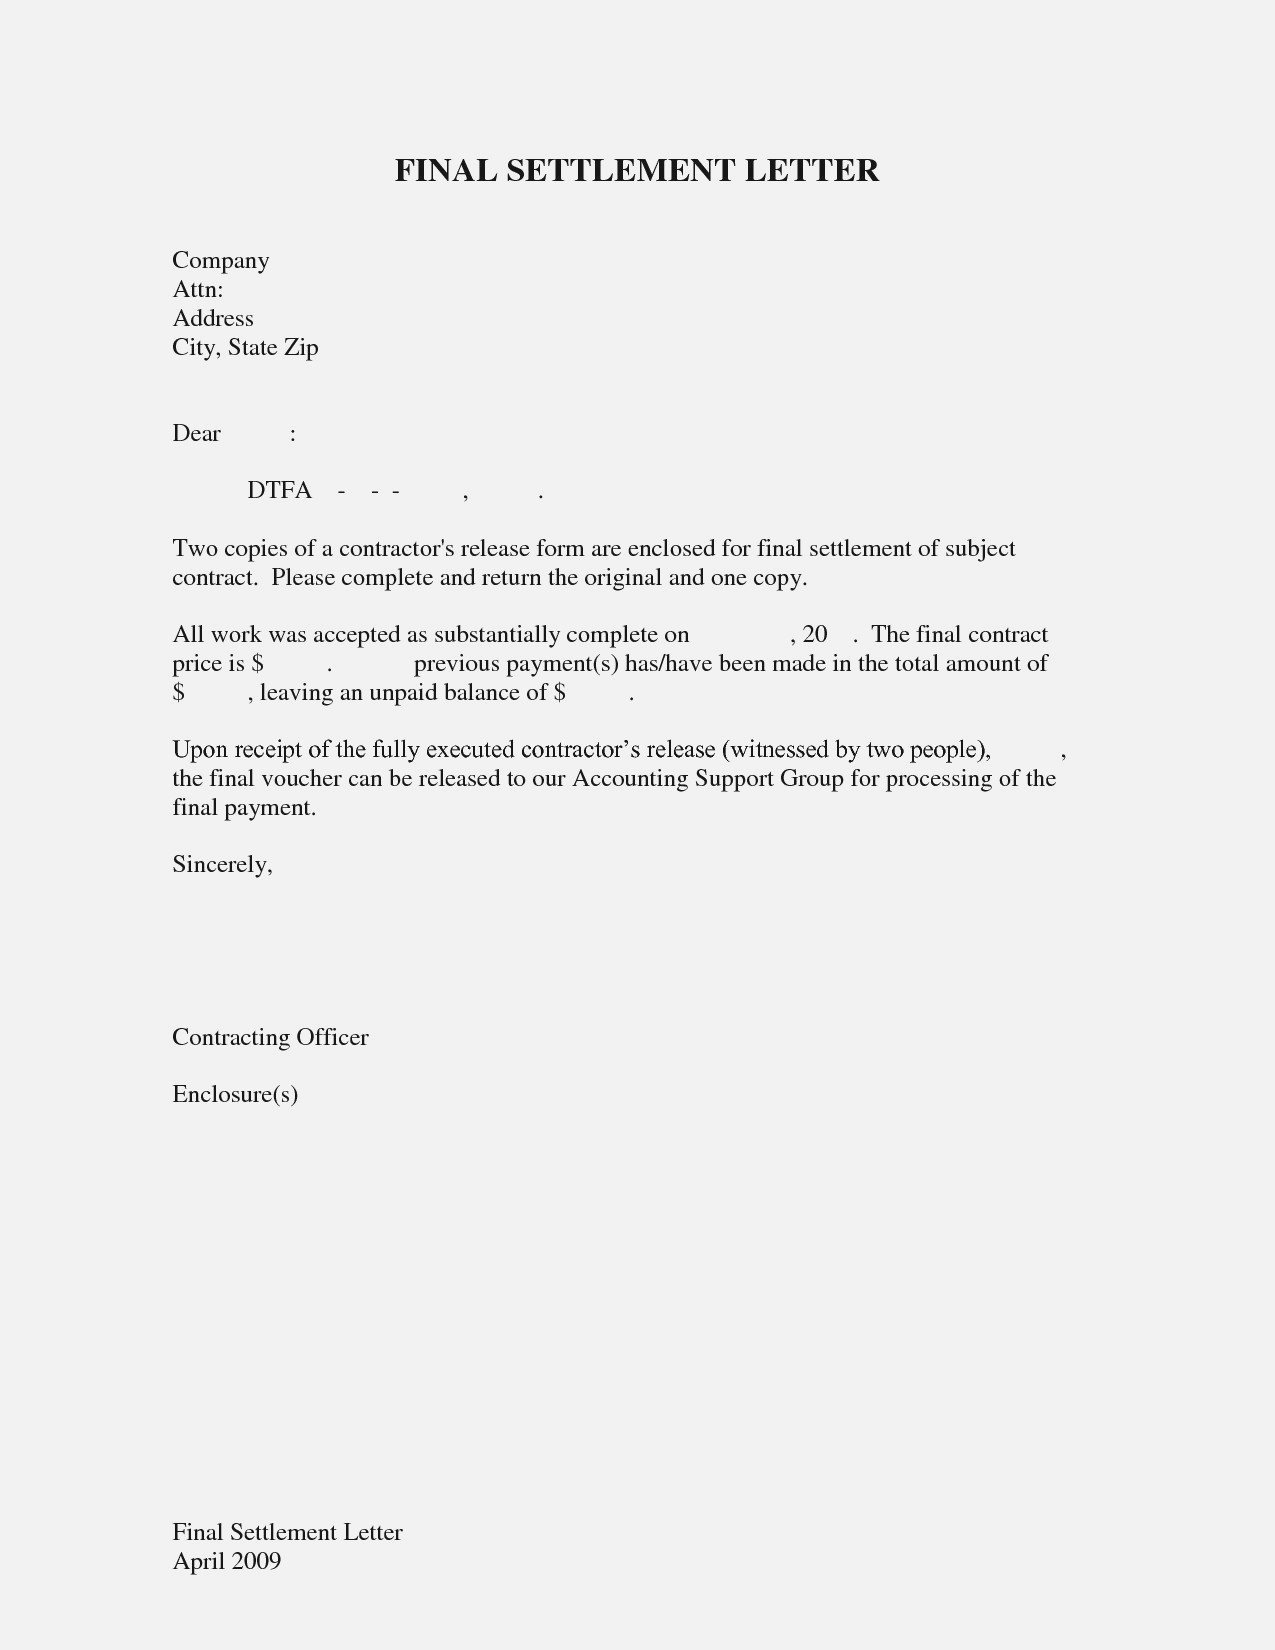 Payment Settlement Letter format Inspirational Sample Full and Final Settlement Letter format Employee to